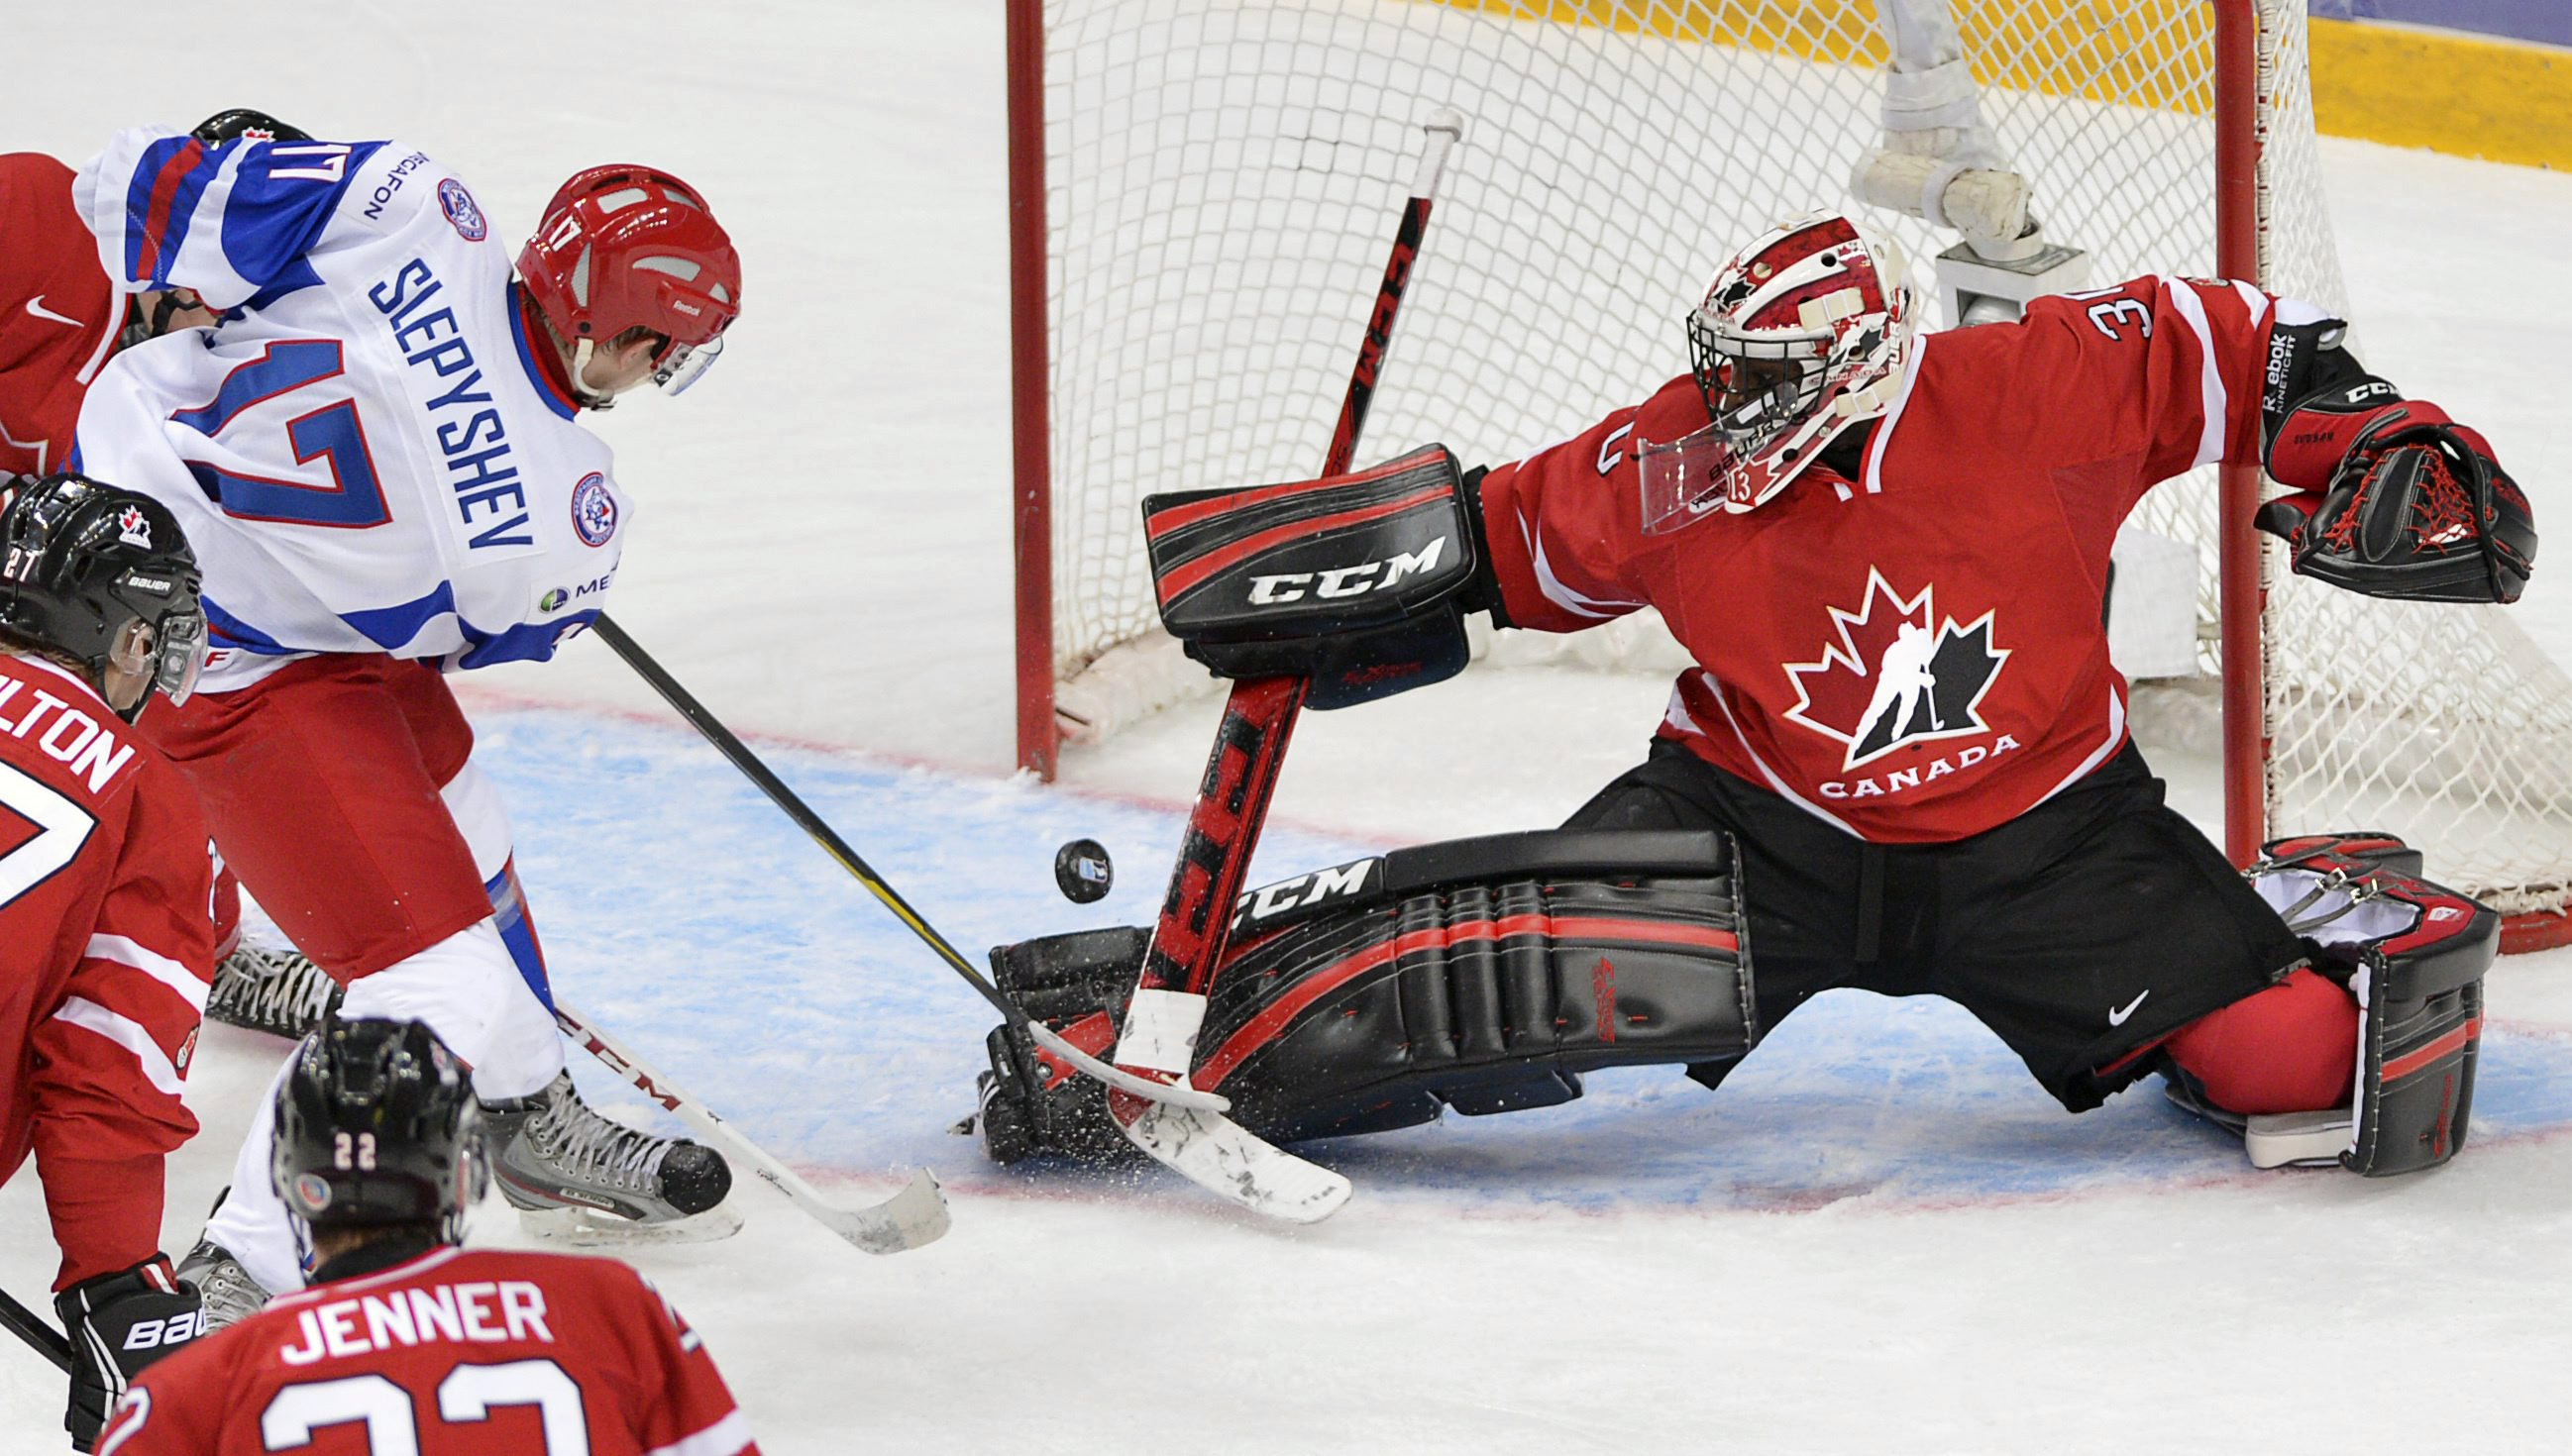 Malcolm Subban came on relief of Jordan Binnington in the bronze-medal game. (AP)